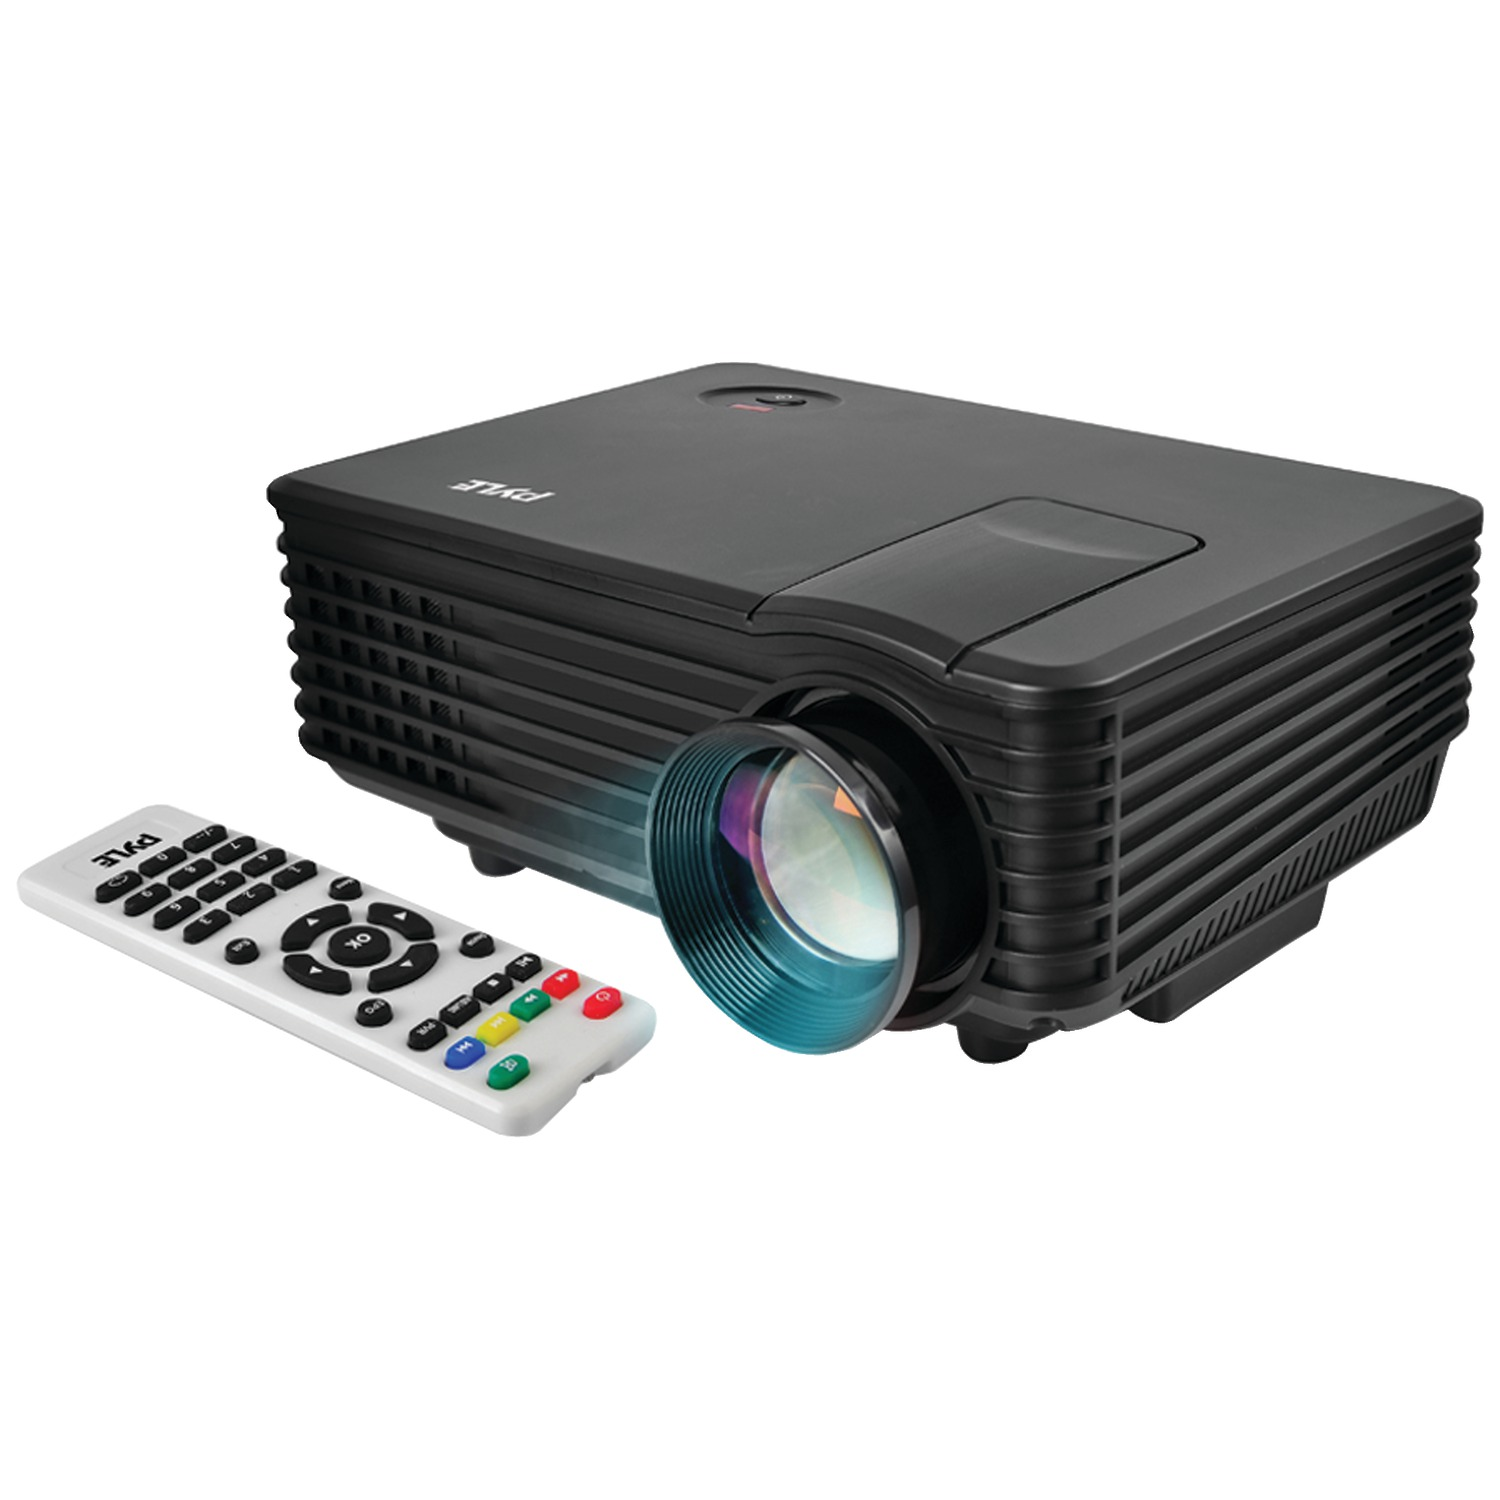 Pyle prjg88 prjg88 compact 1080p multimedia projector for Smallest full hd projector